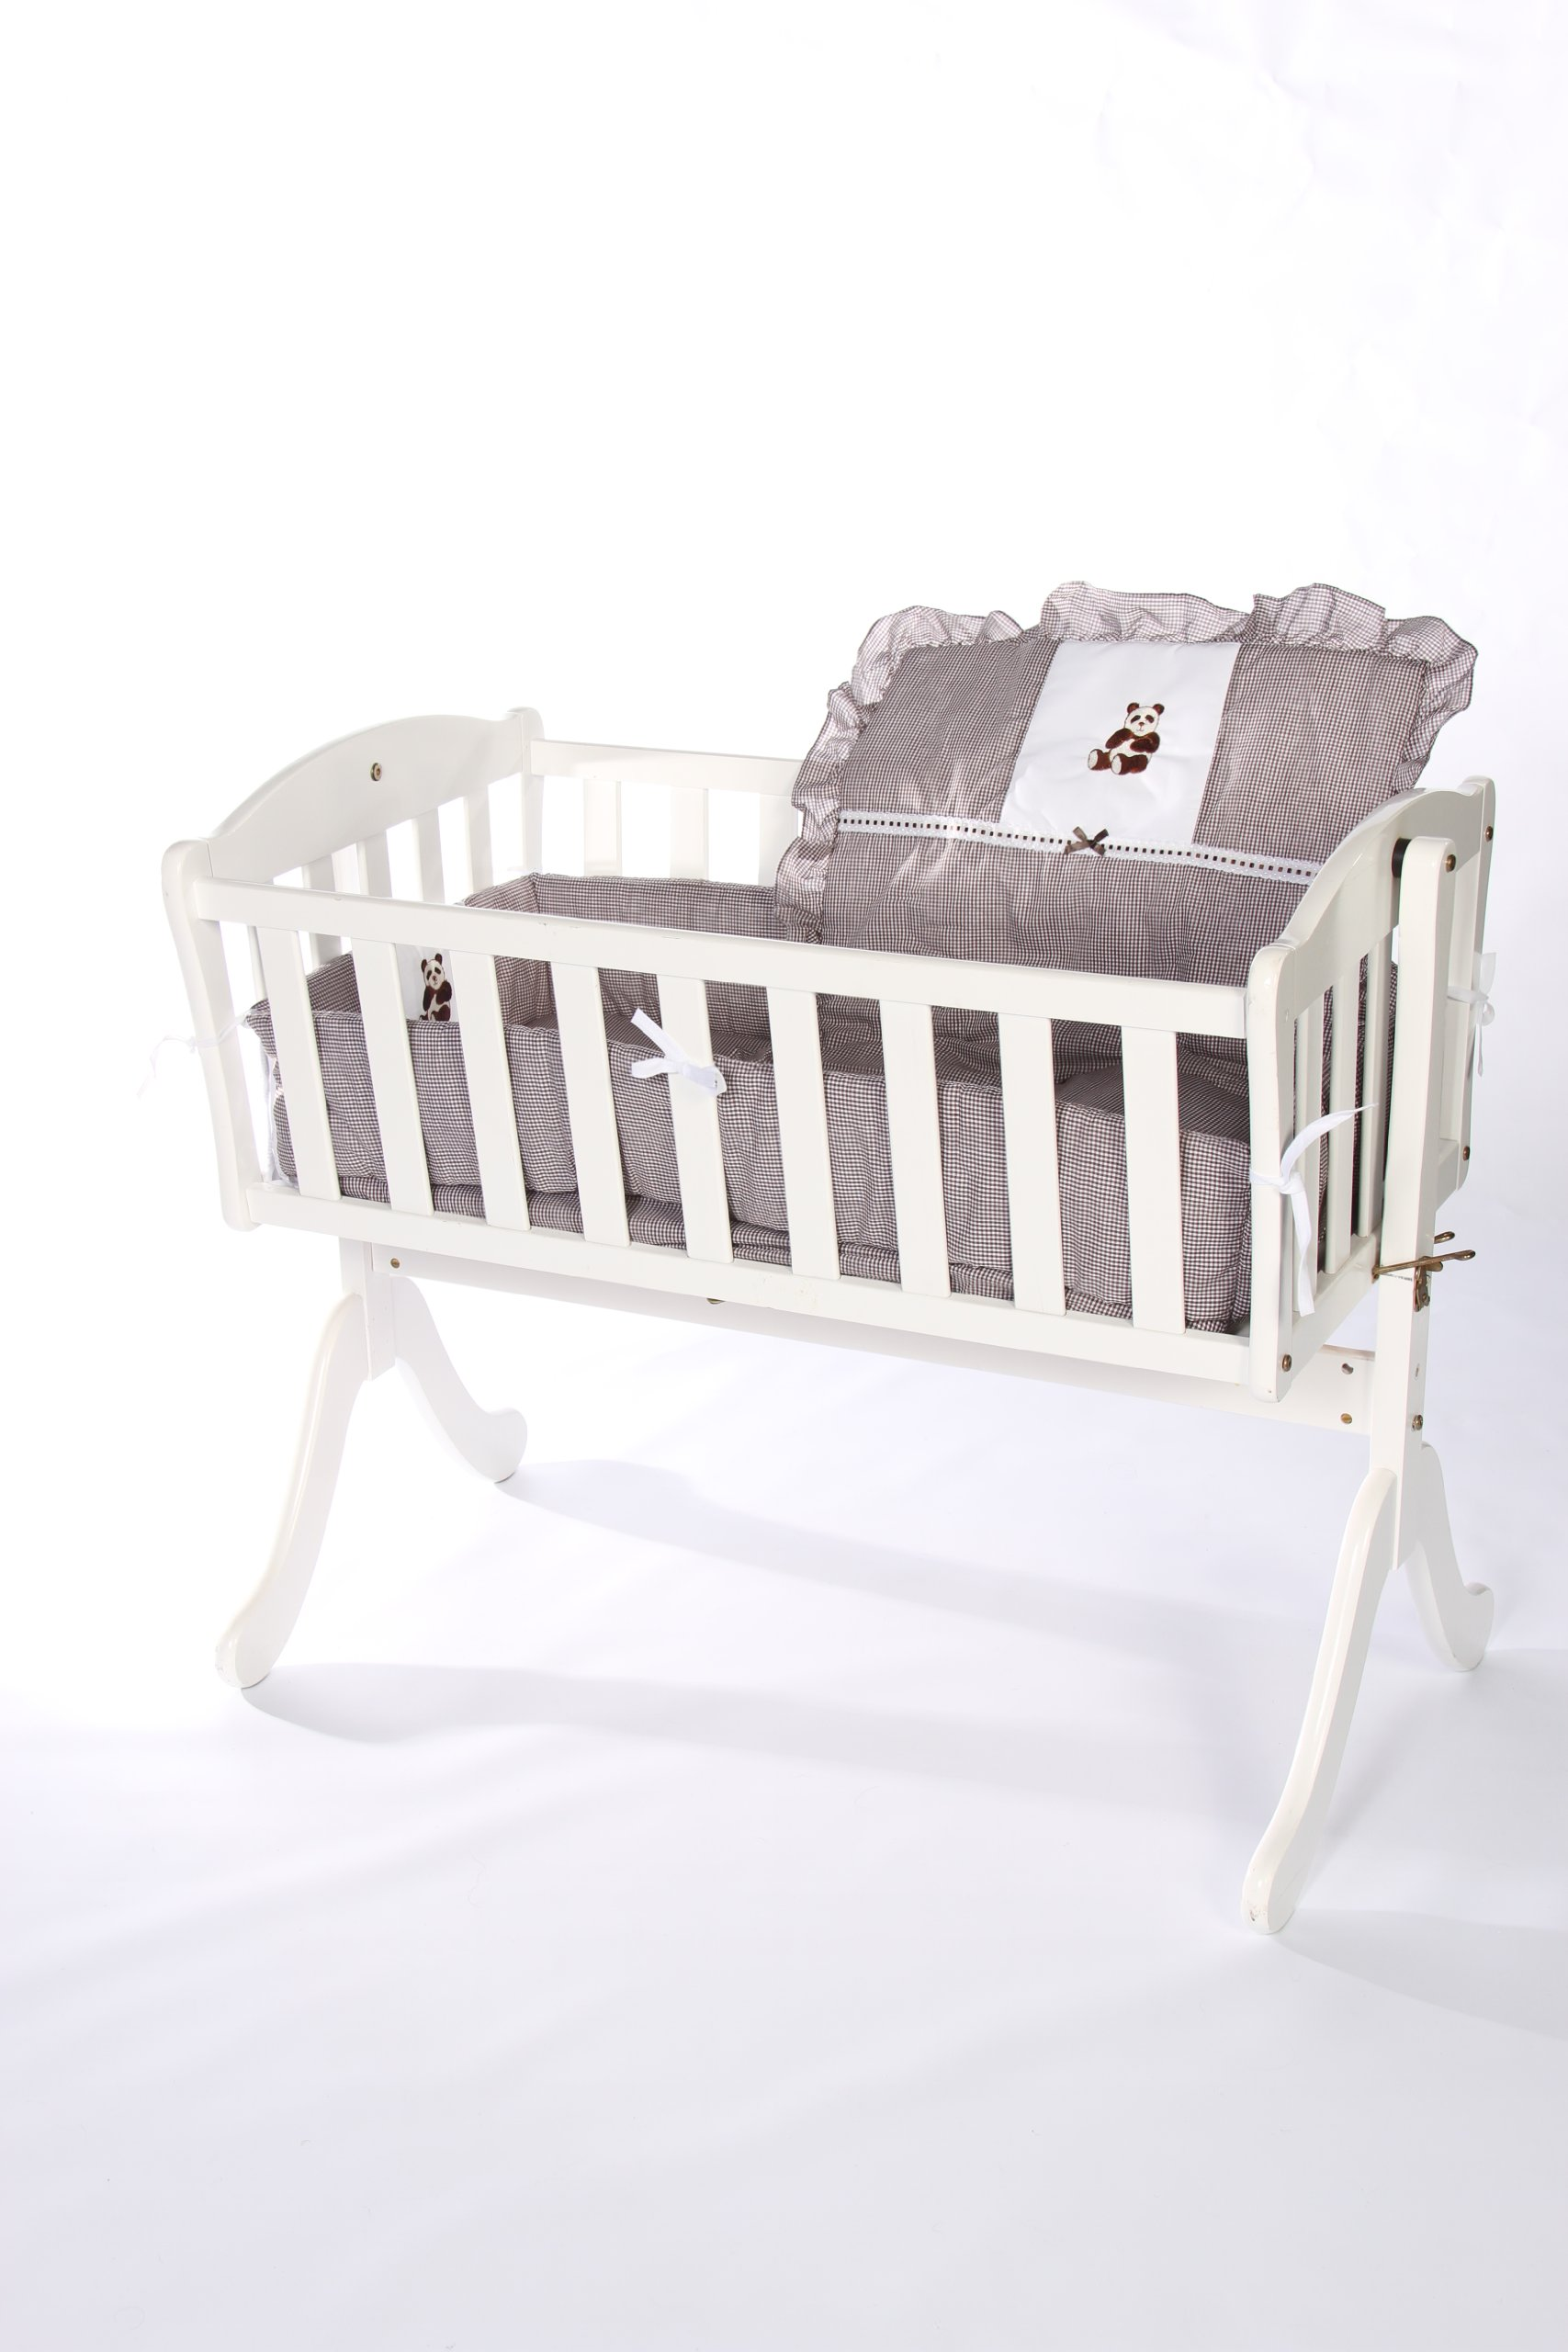 Baby Doll Bedding Gingham with Bear Applique Cradle Bedding Set, Brown by BabyDoll Bedding